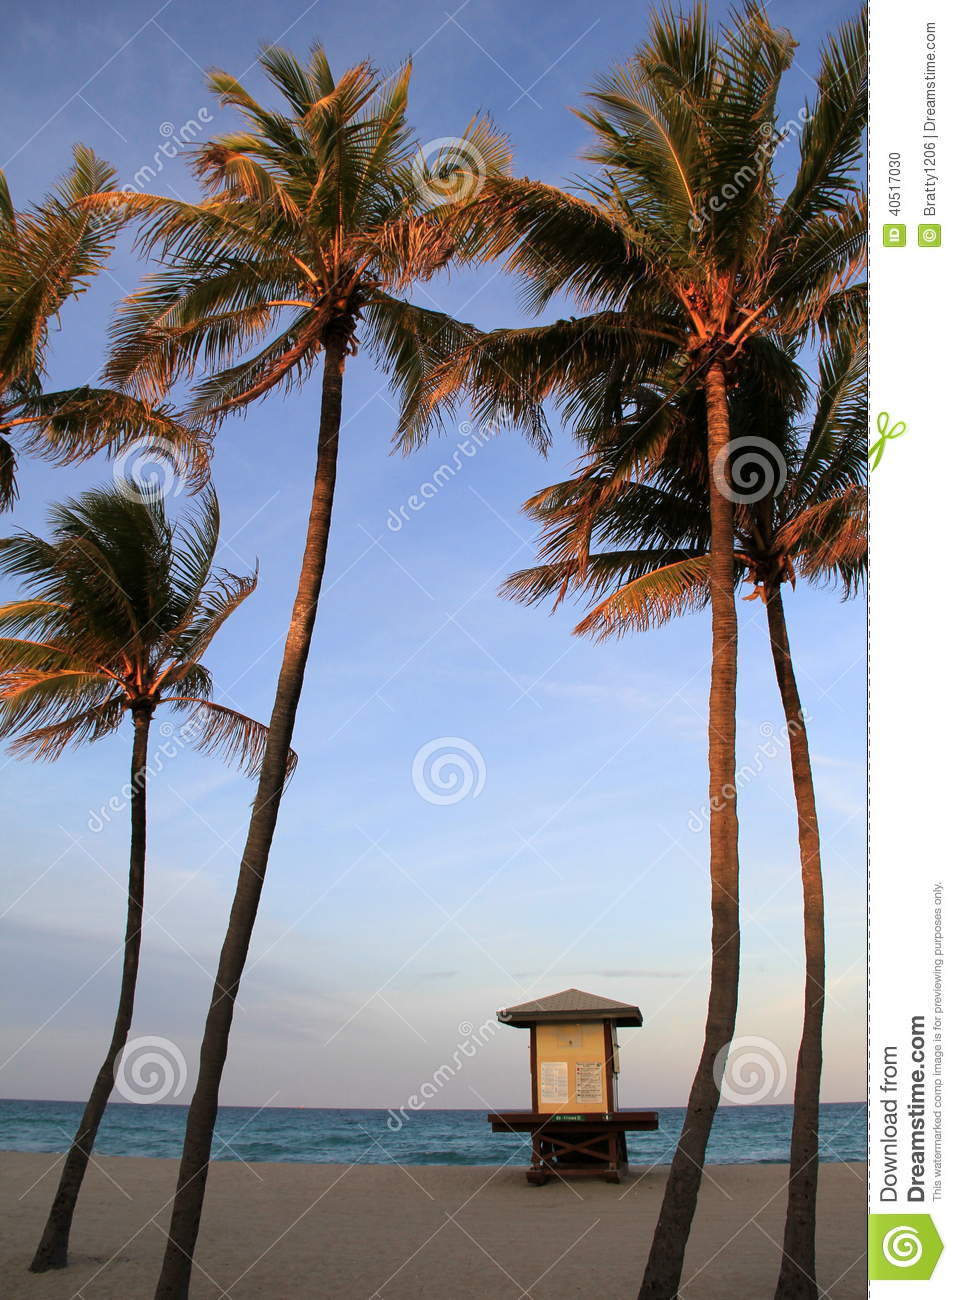 palm trees and signs showing beach conditions miami florida 2914 stock photo image 40517030. Black Bedroom Furniture Sets. Home Design Ideas